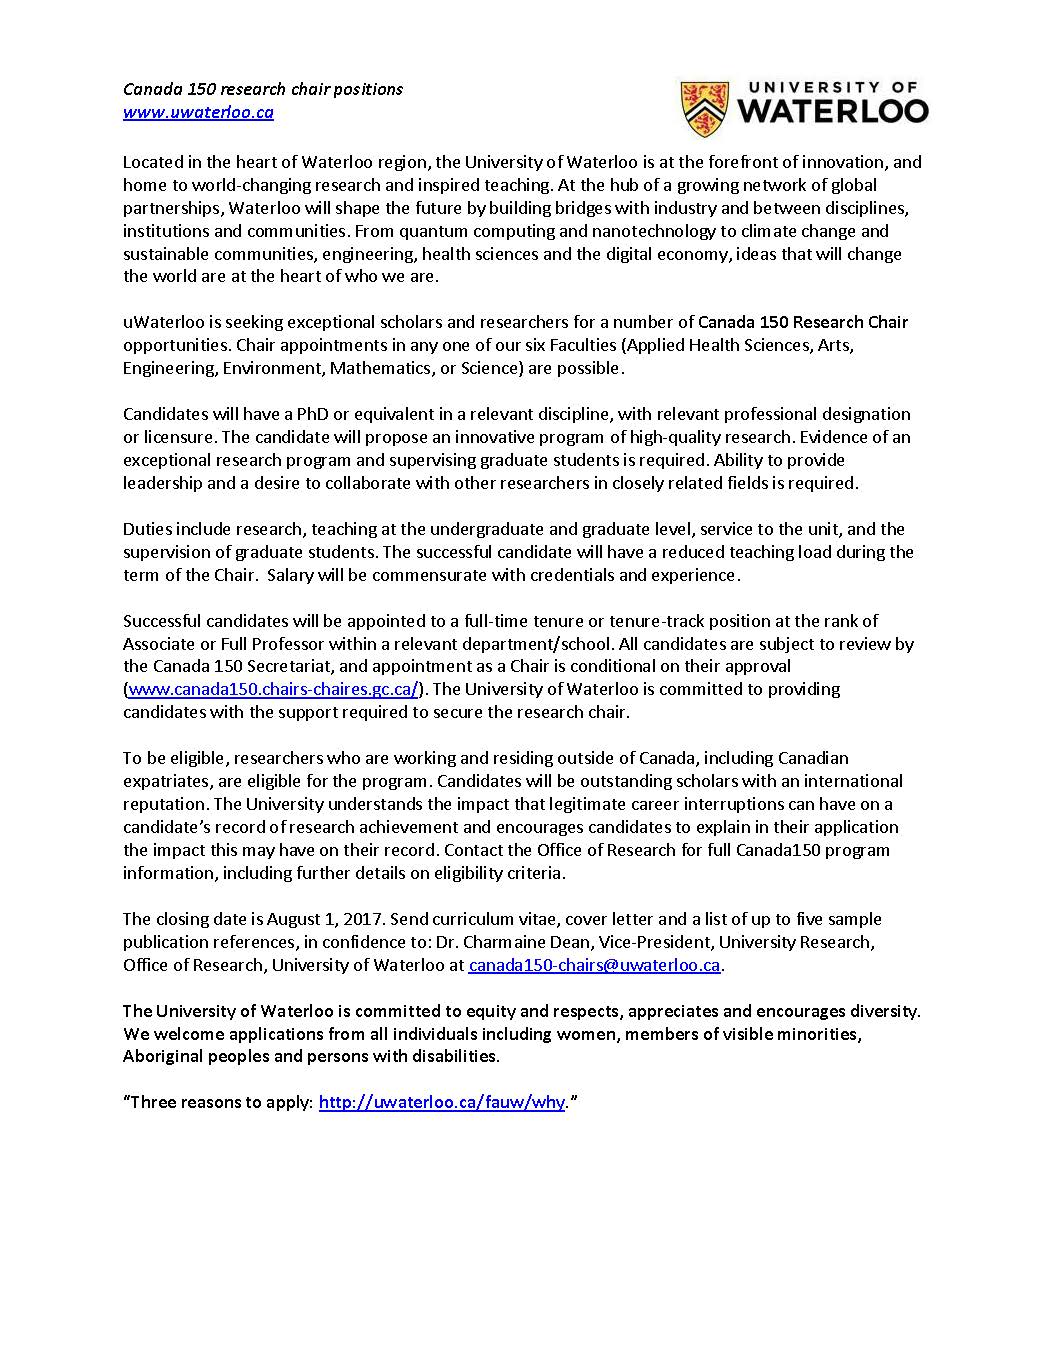 Canada 150 Research Chairs Positions u2013 University of Waterloo (Aug. 1 deadline)  sc 1 st  Association of Canadian College and University Teachers of English & Canada 150 Research Chairs Positions u2013 University of Waterloo (Aug ...